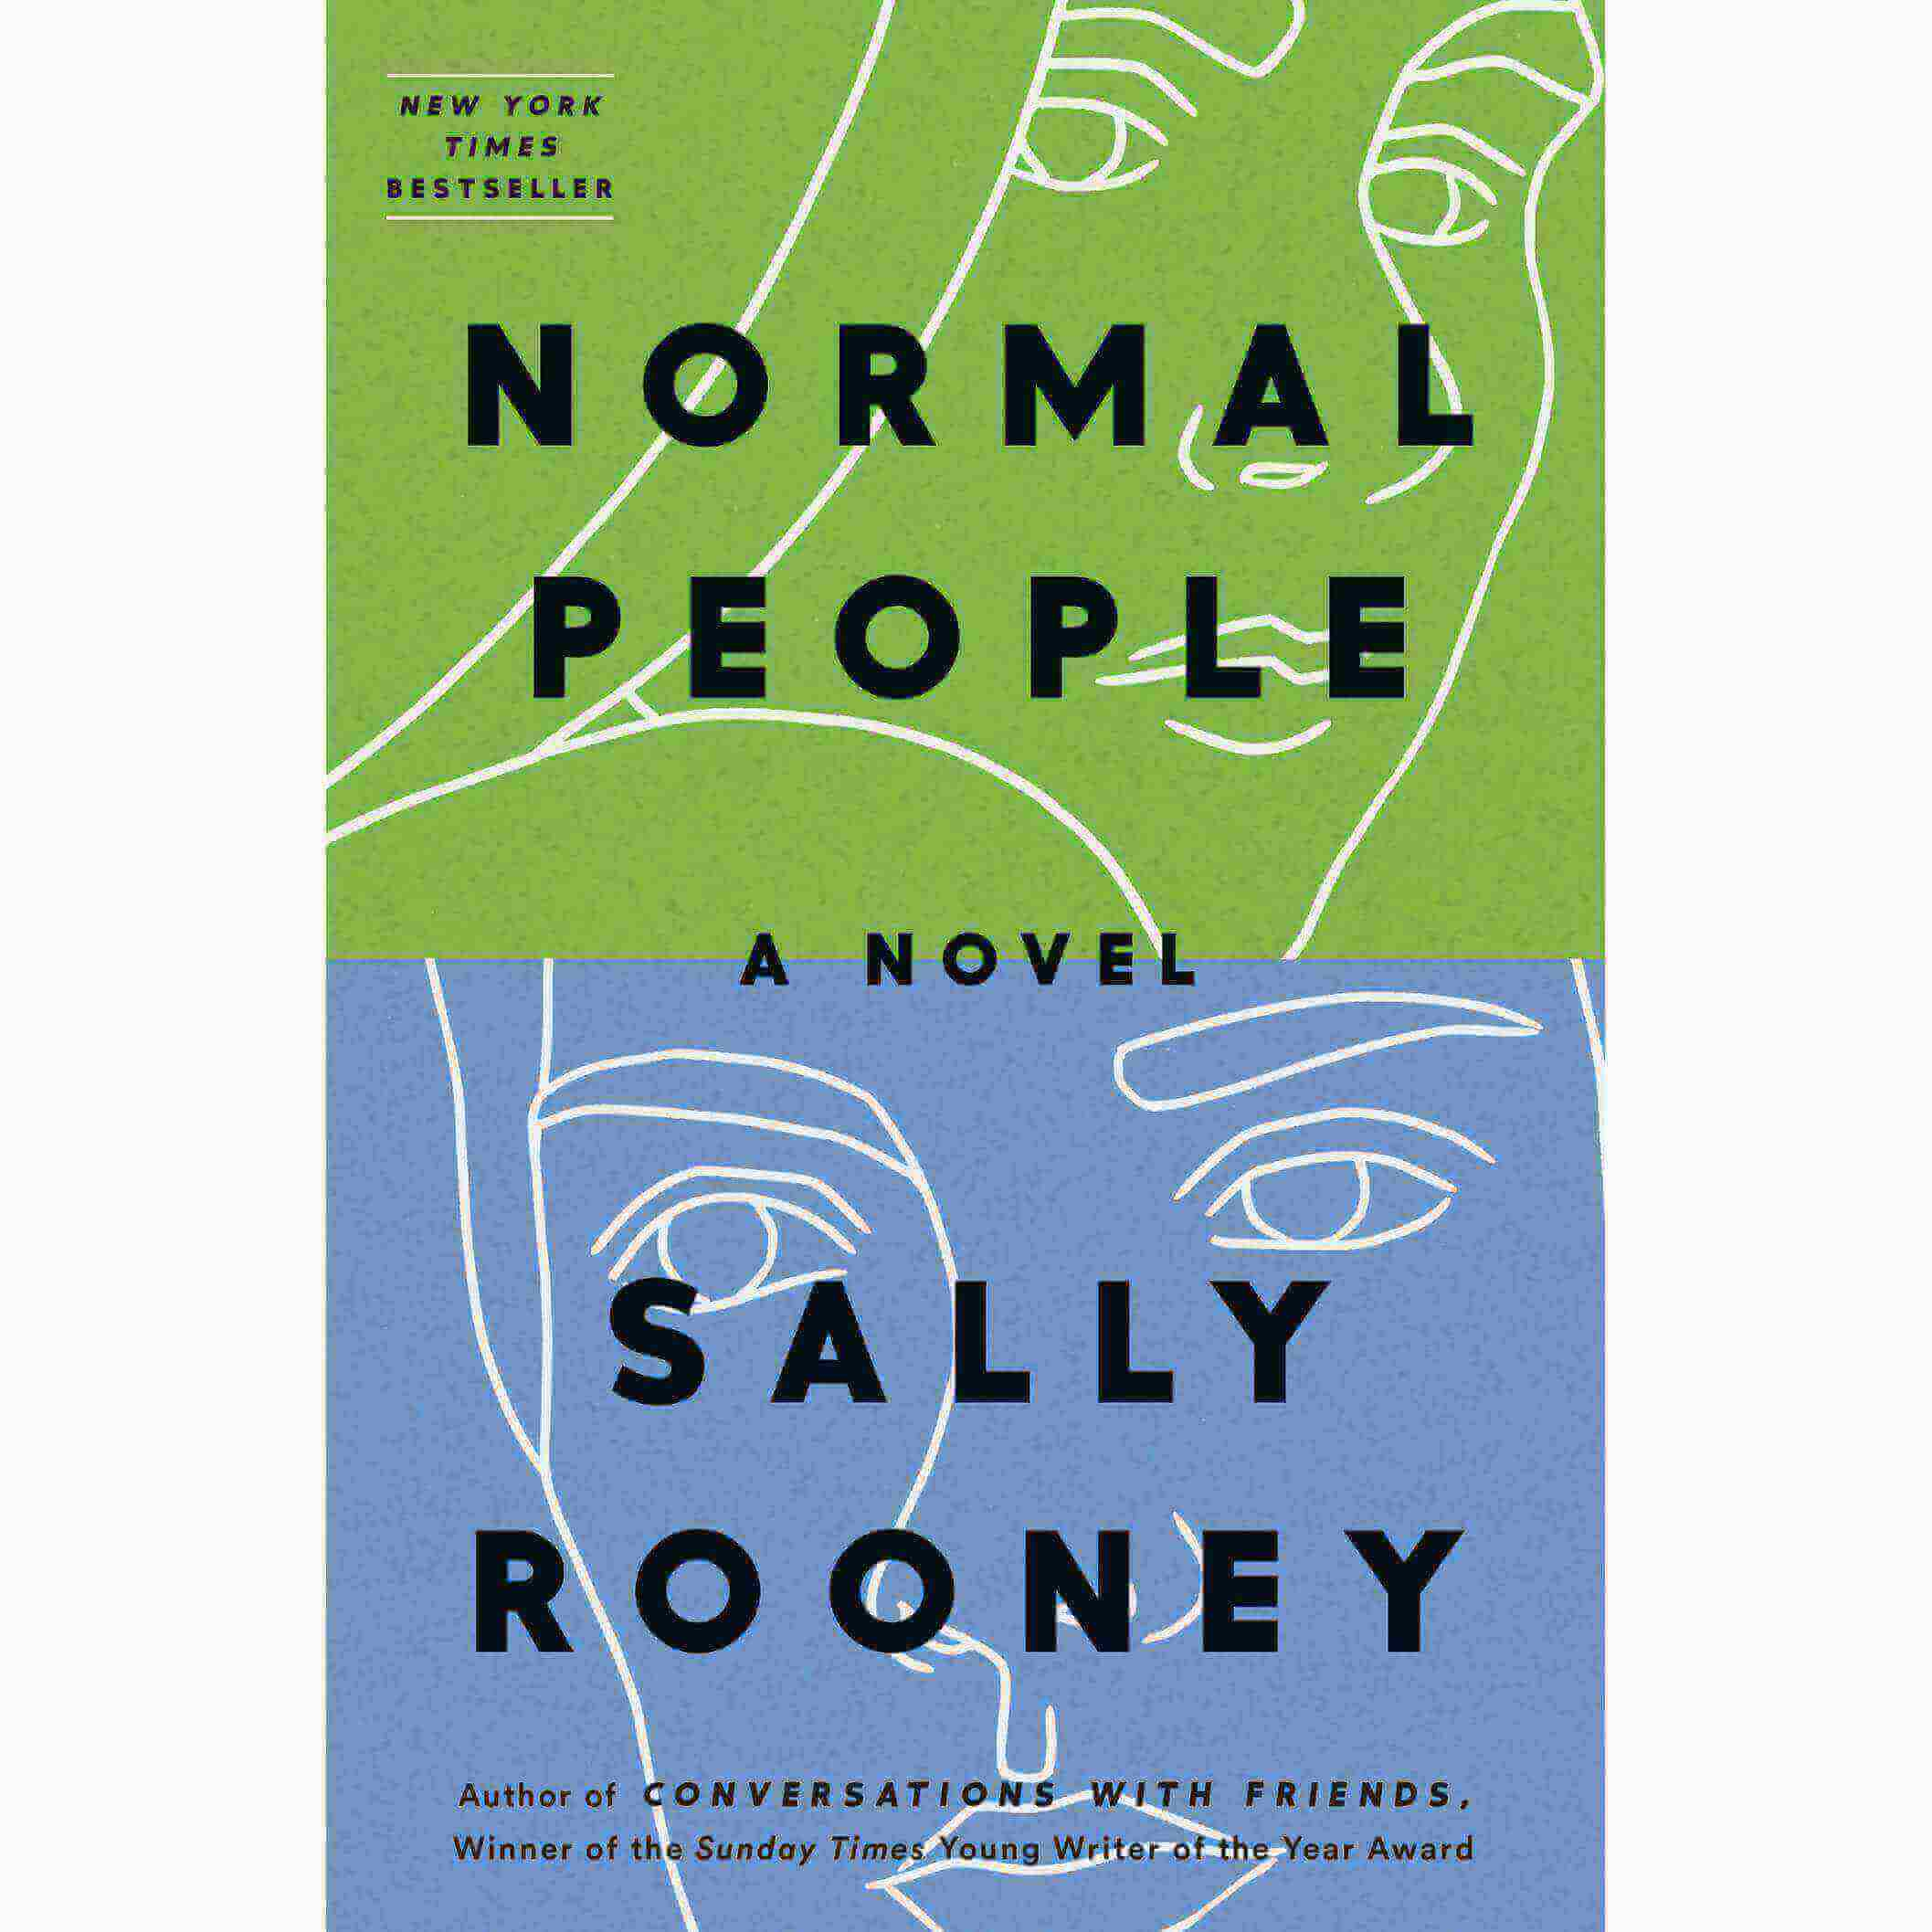 Normal People book recommendations by Sally Rooney.